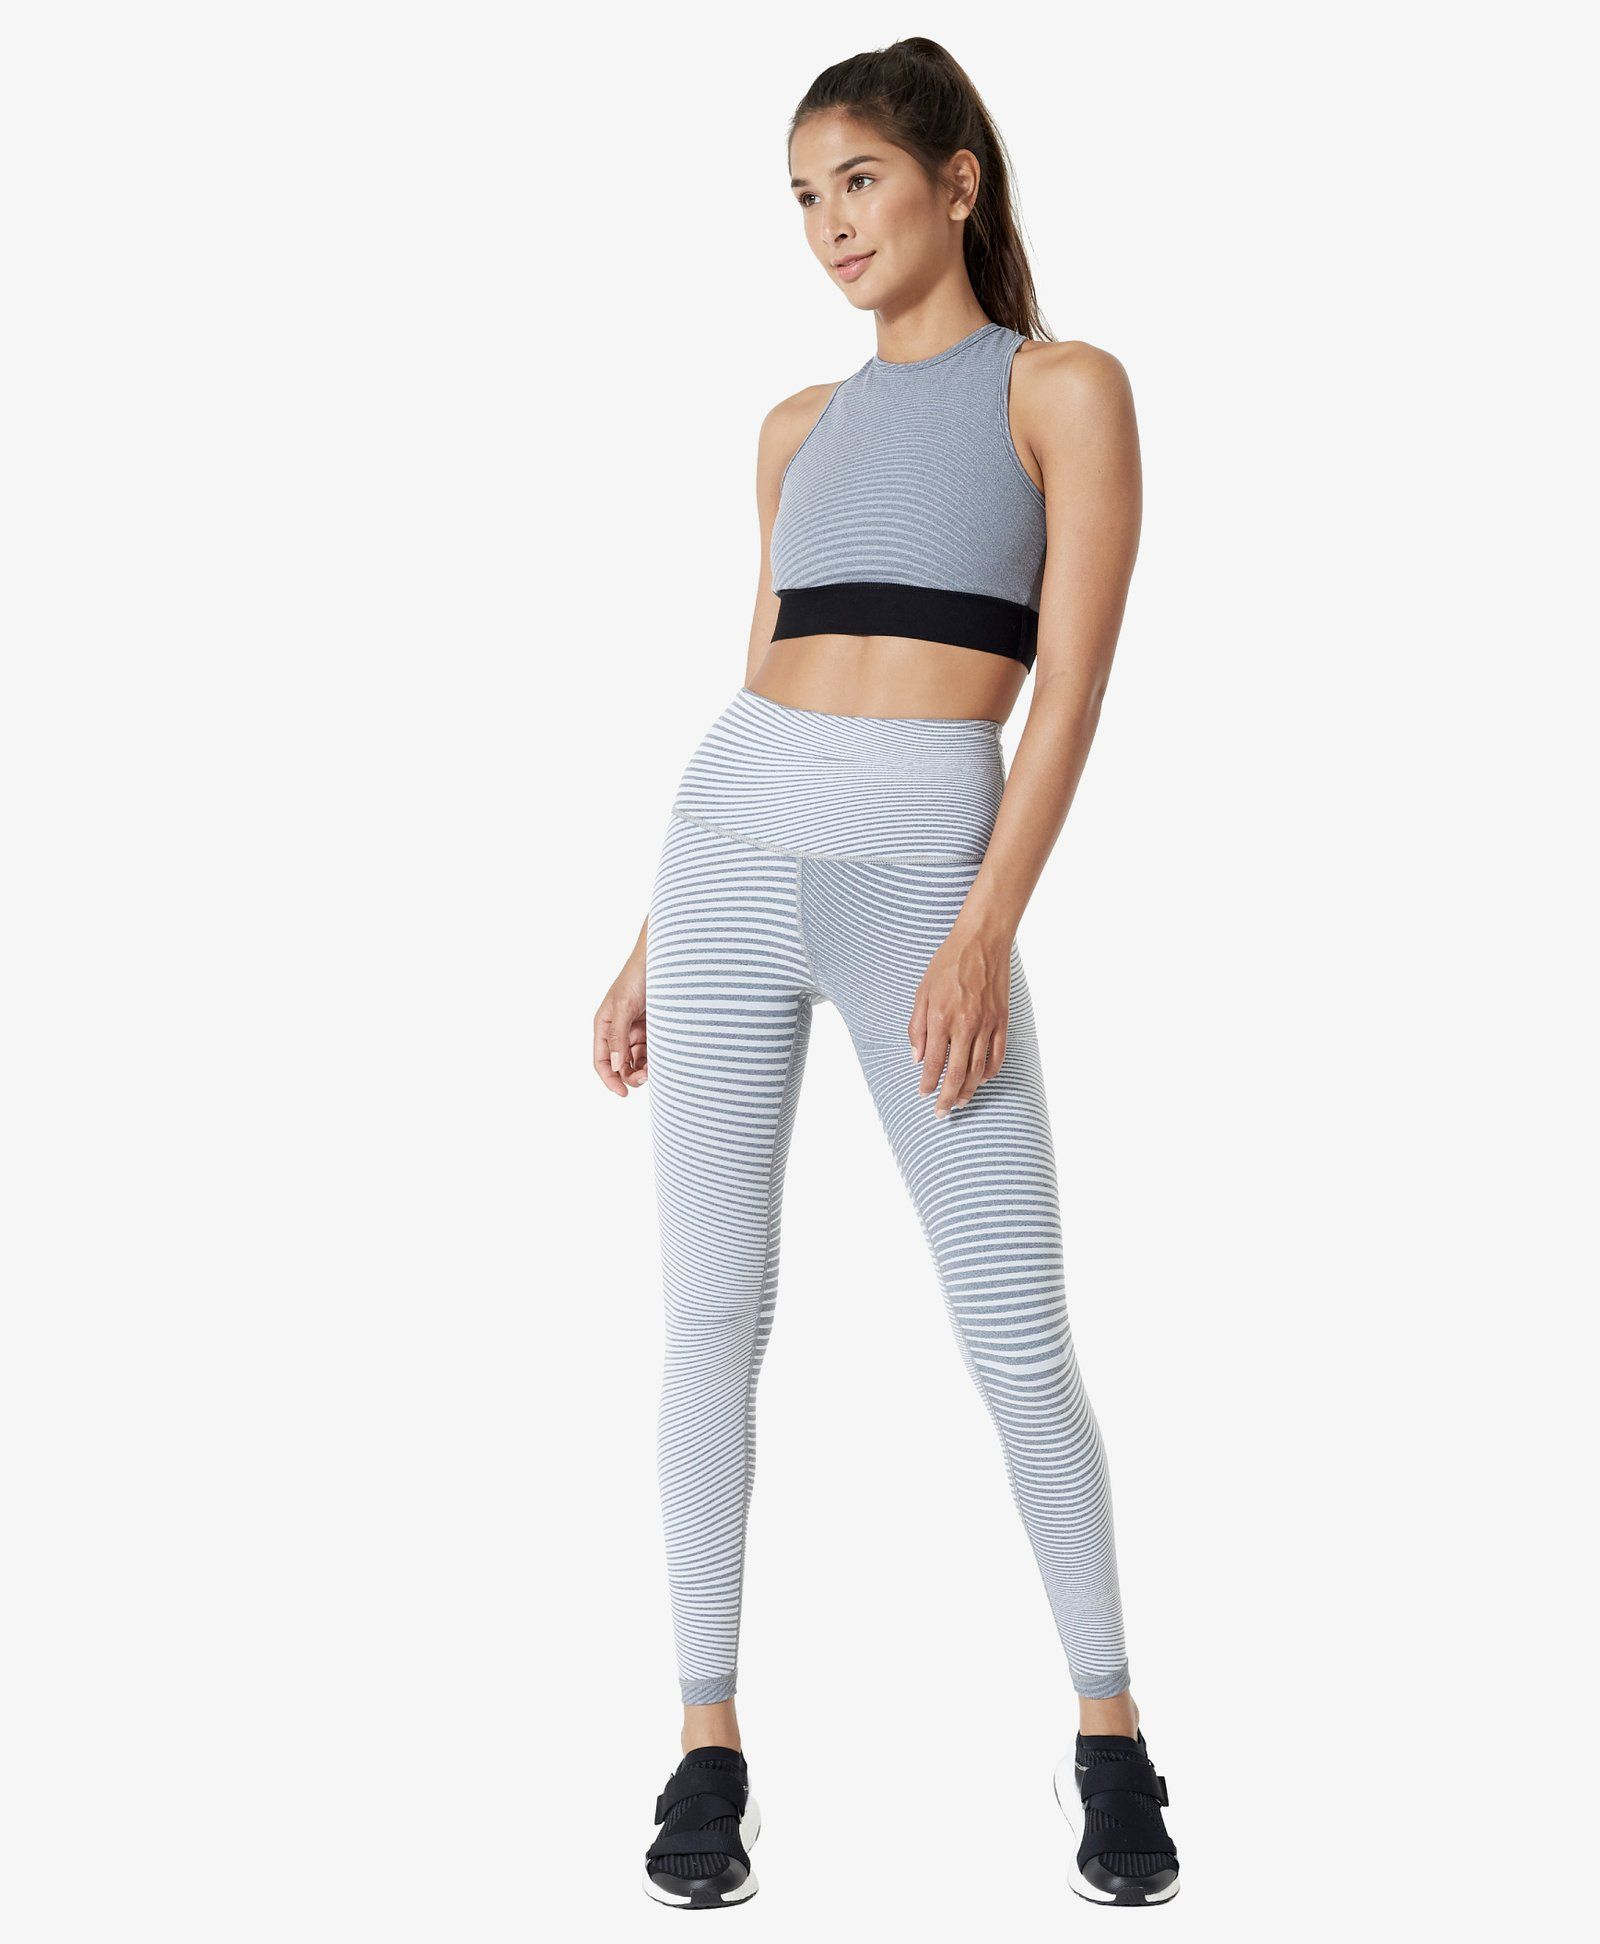 5b86ee37c02cc The Best Workout Pants for Every Type of Exercise - Best Leggings For Every  Workout